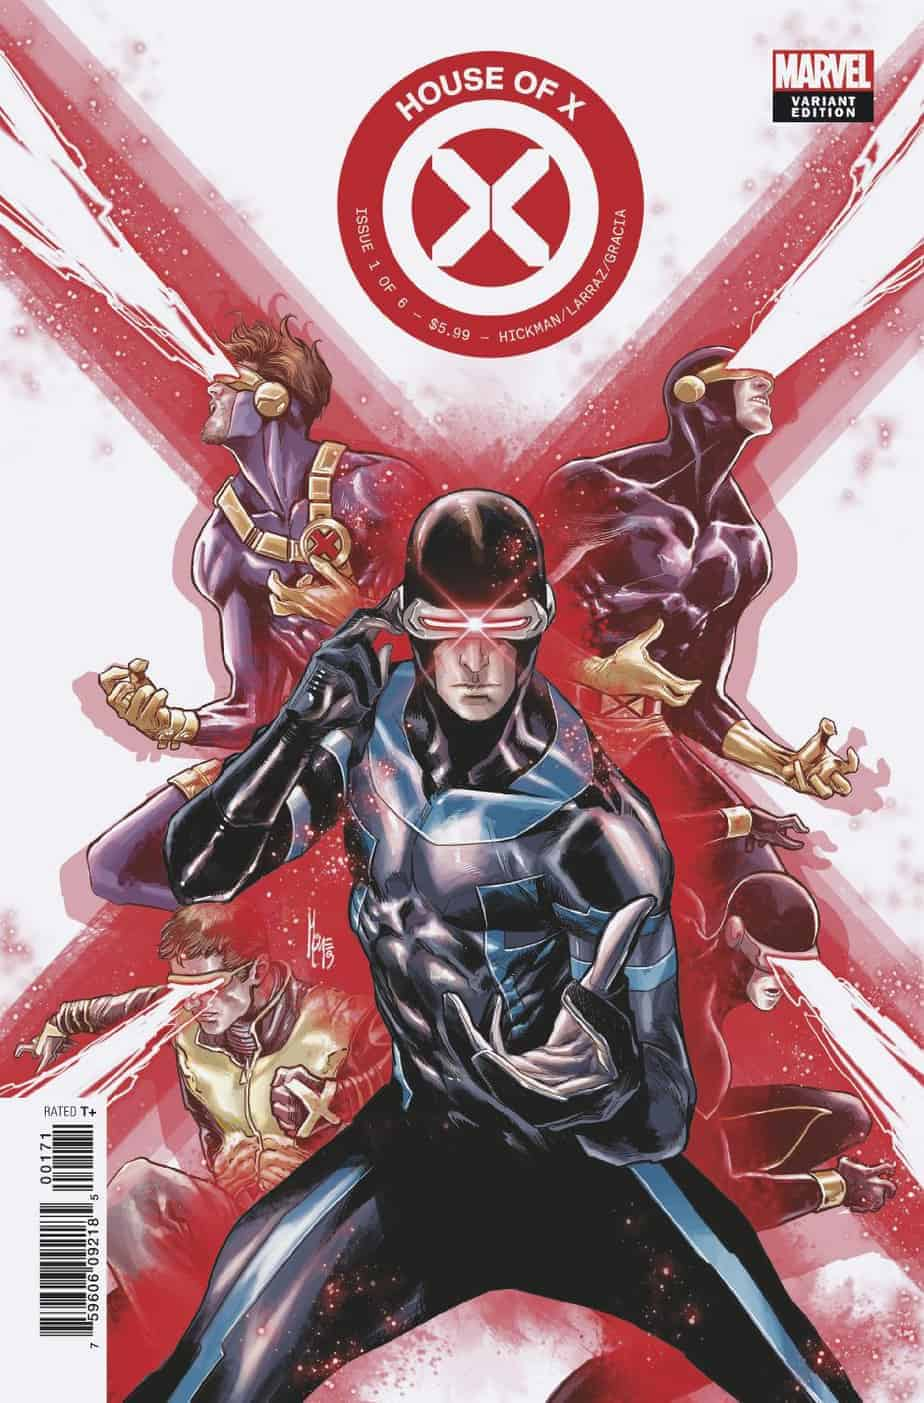 HOUSE OF X #1 - Cover F